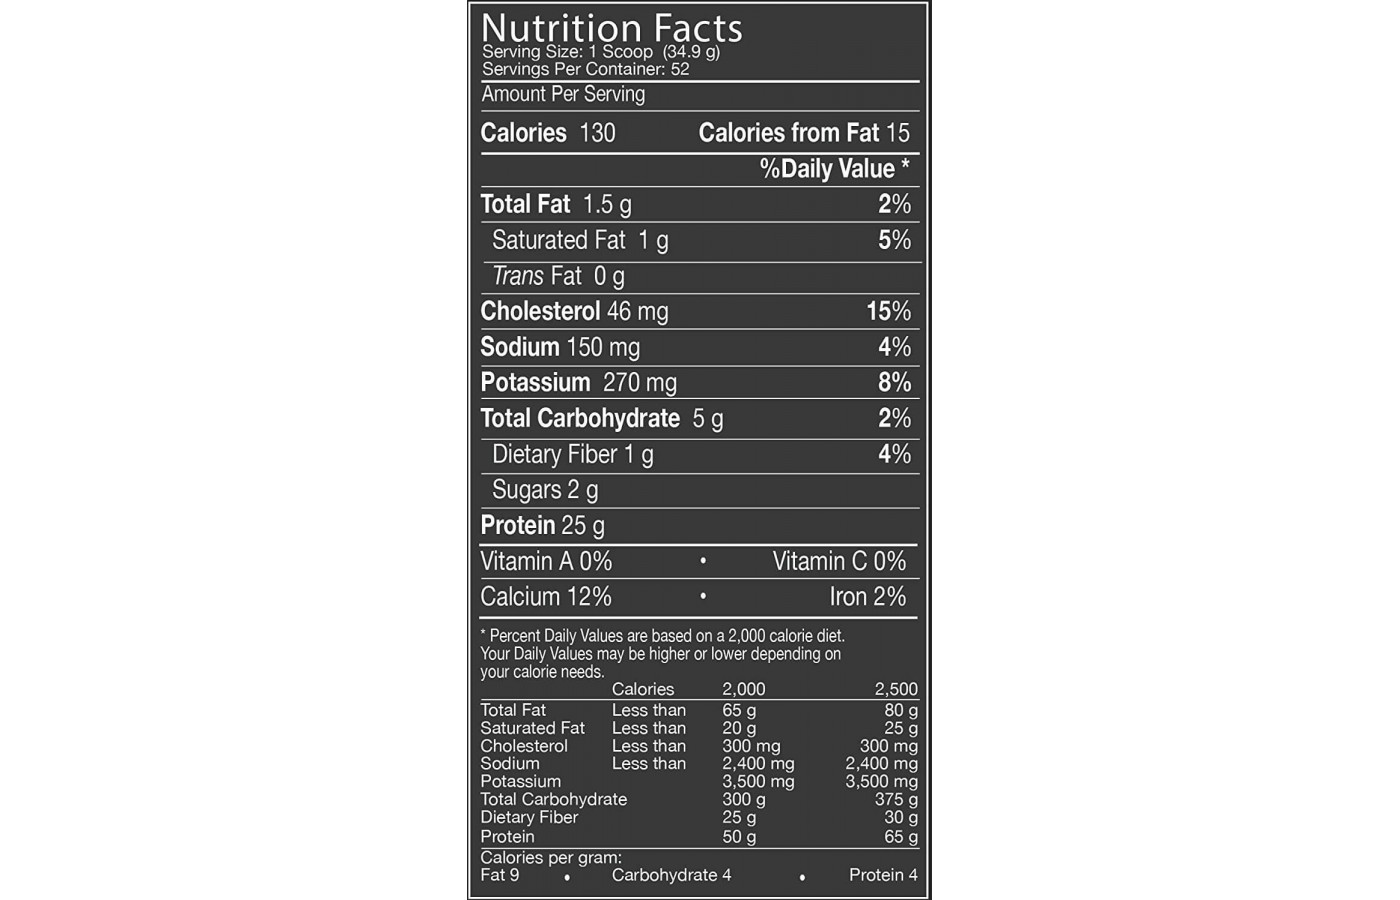 Combat Nutrition Facts